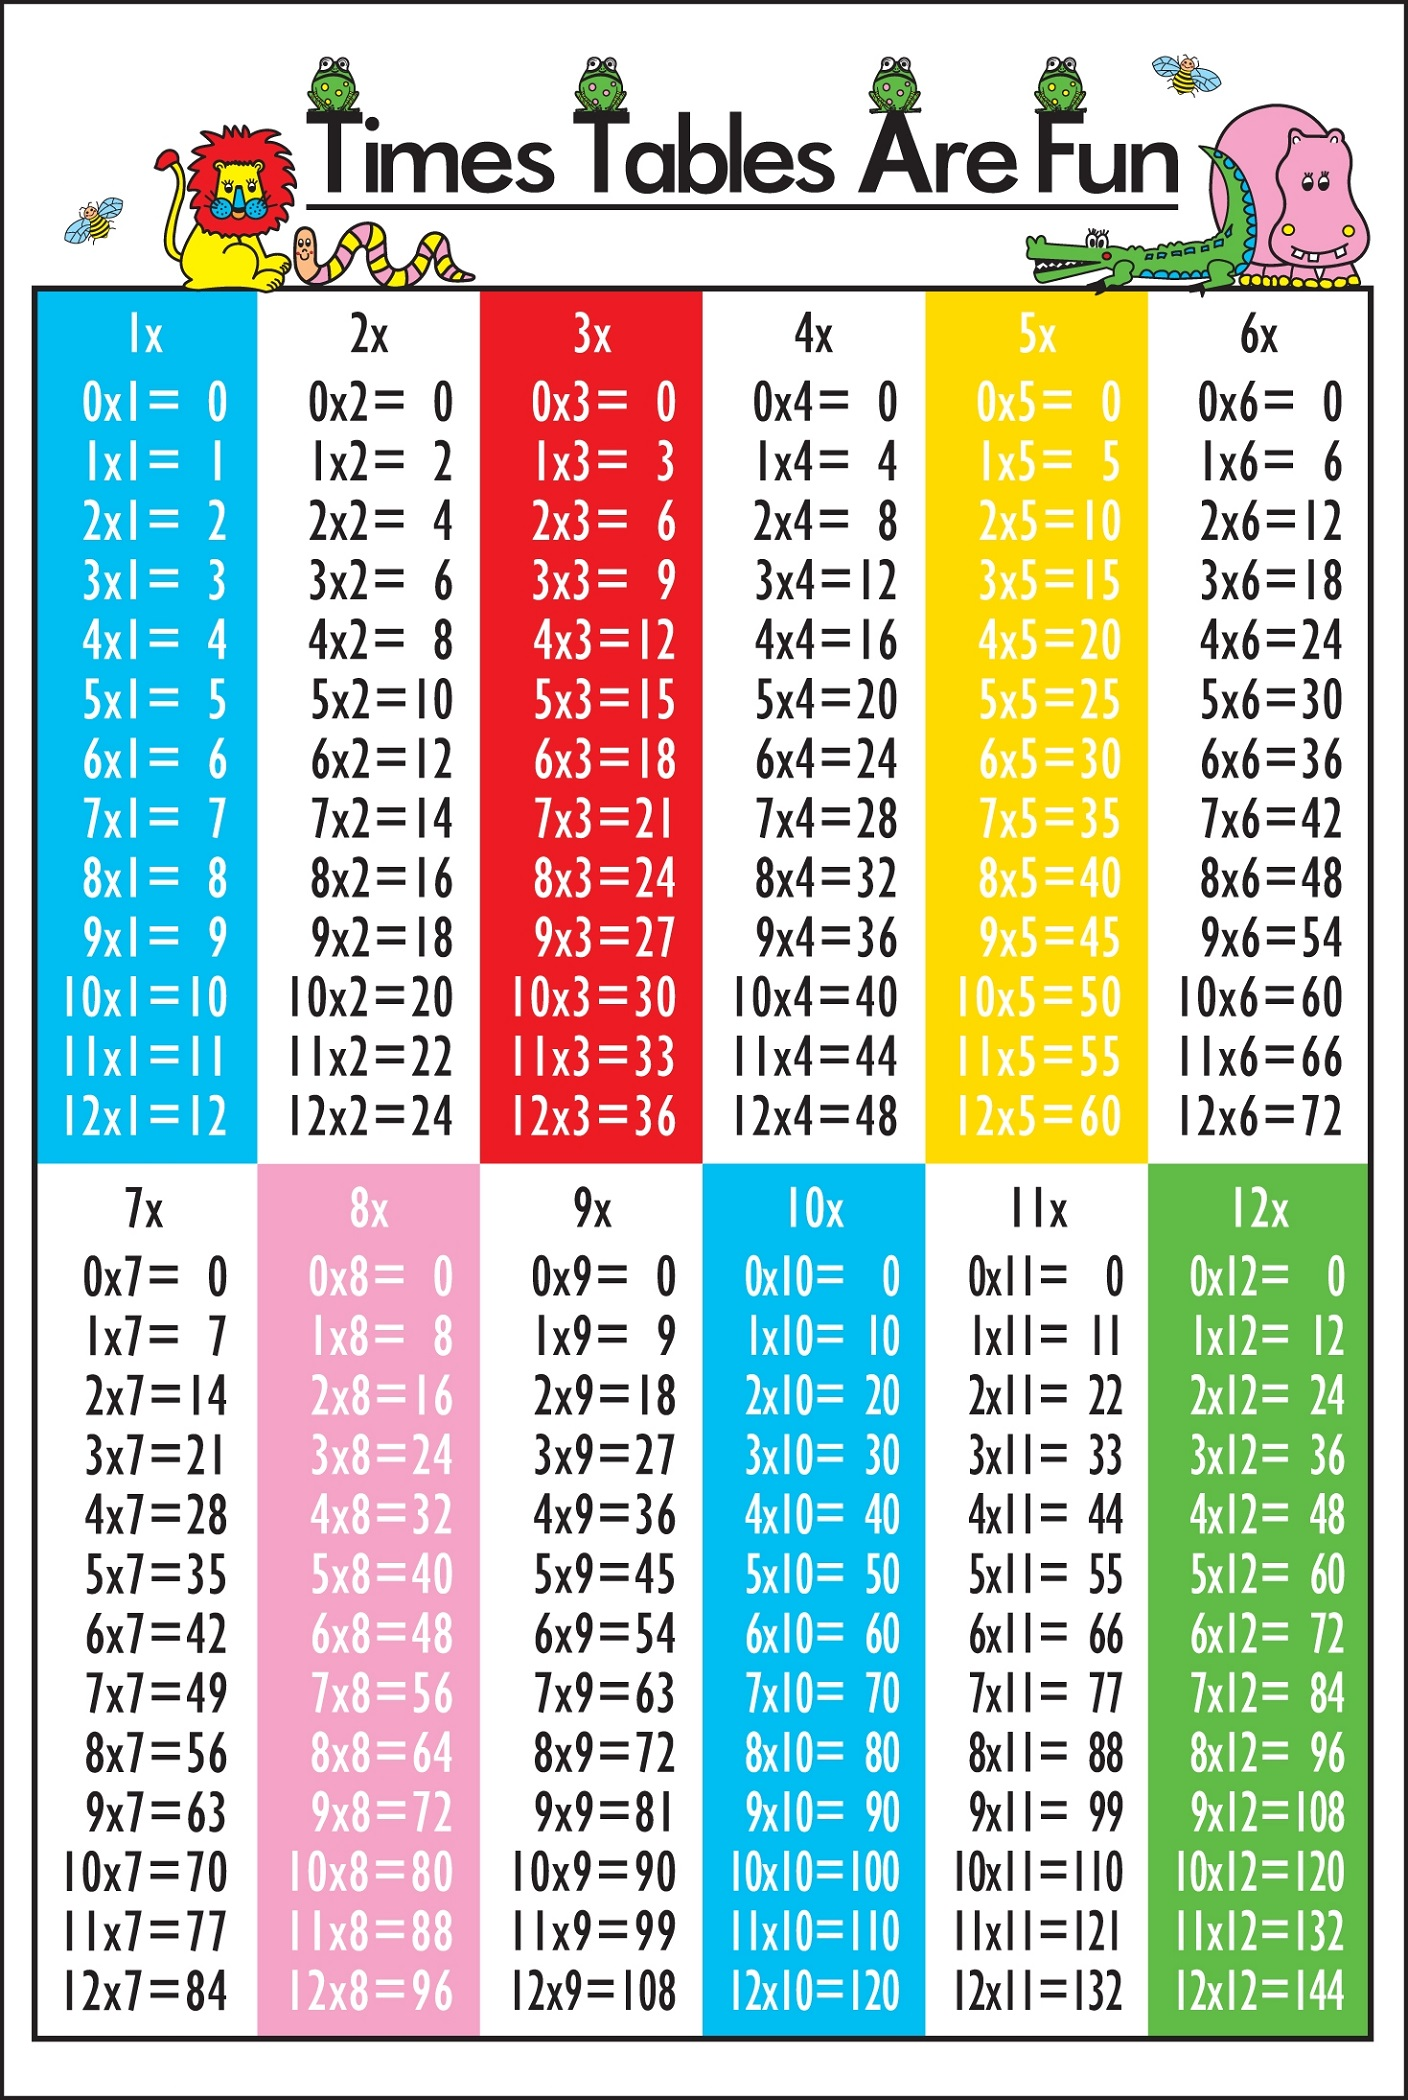 Fun Pictures of Times Tables